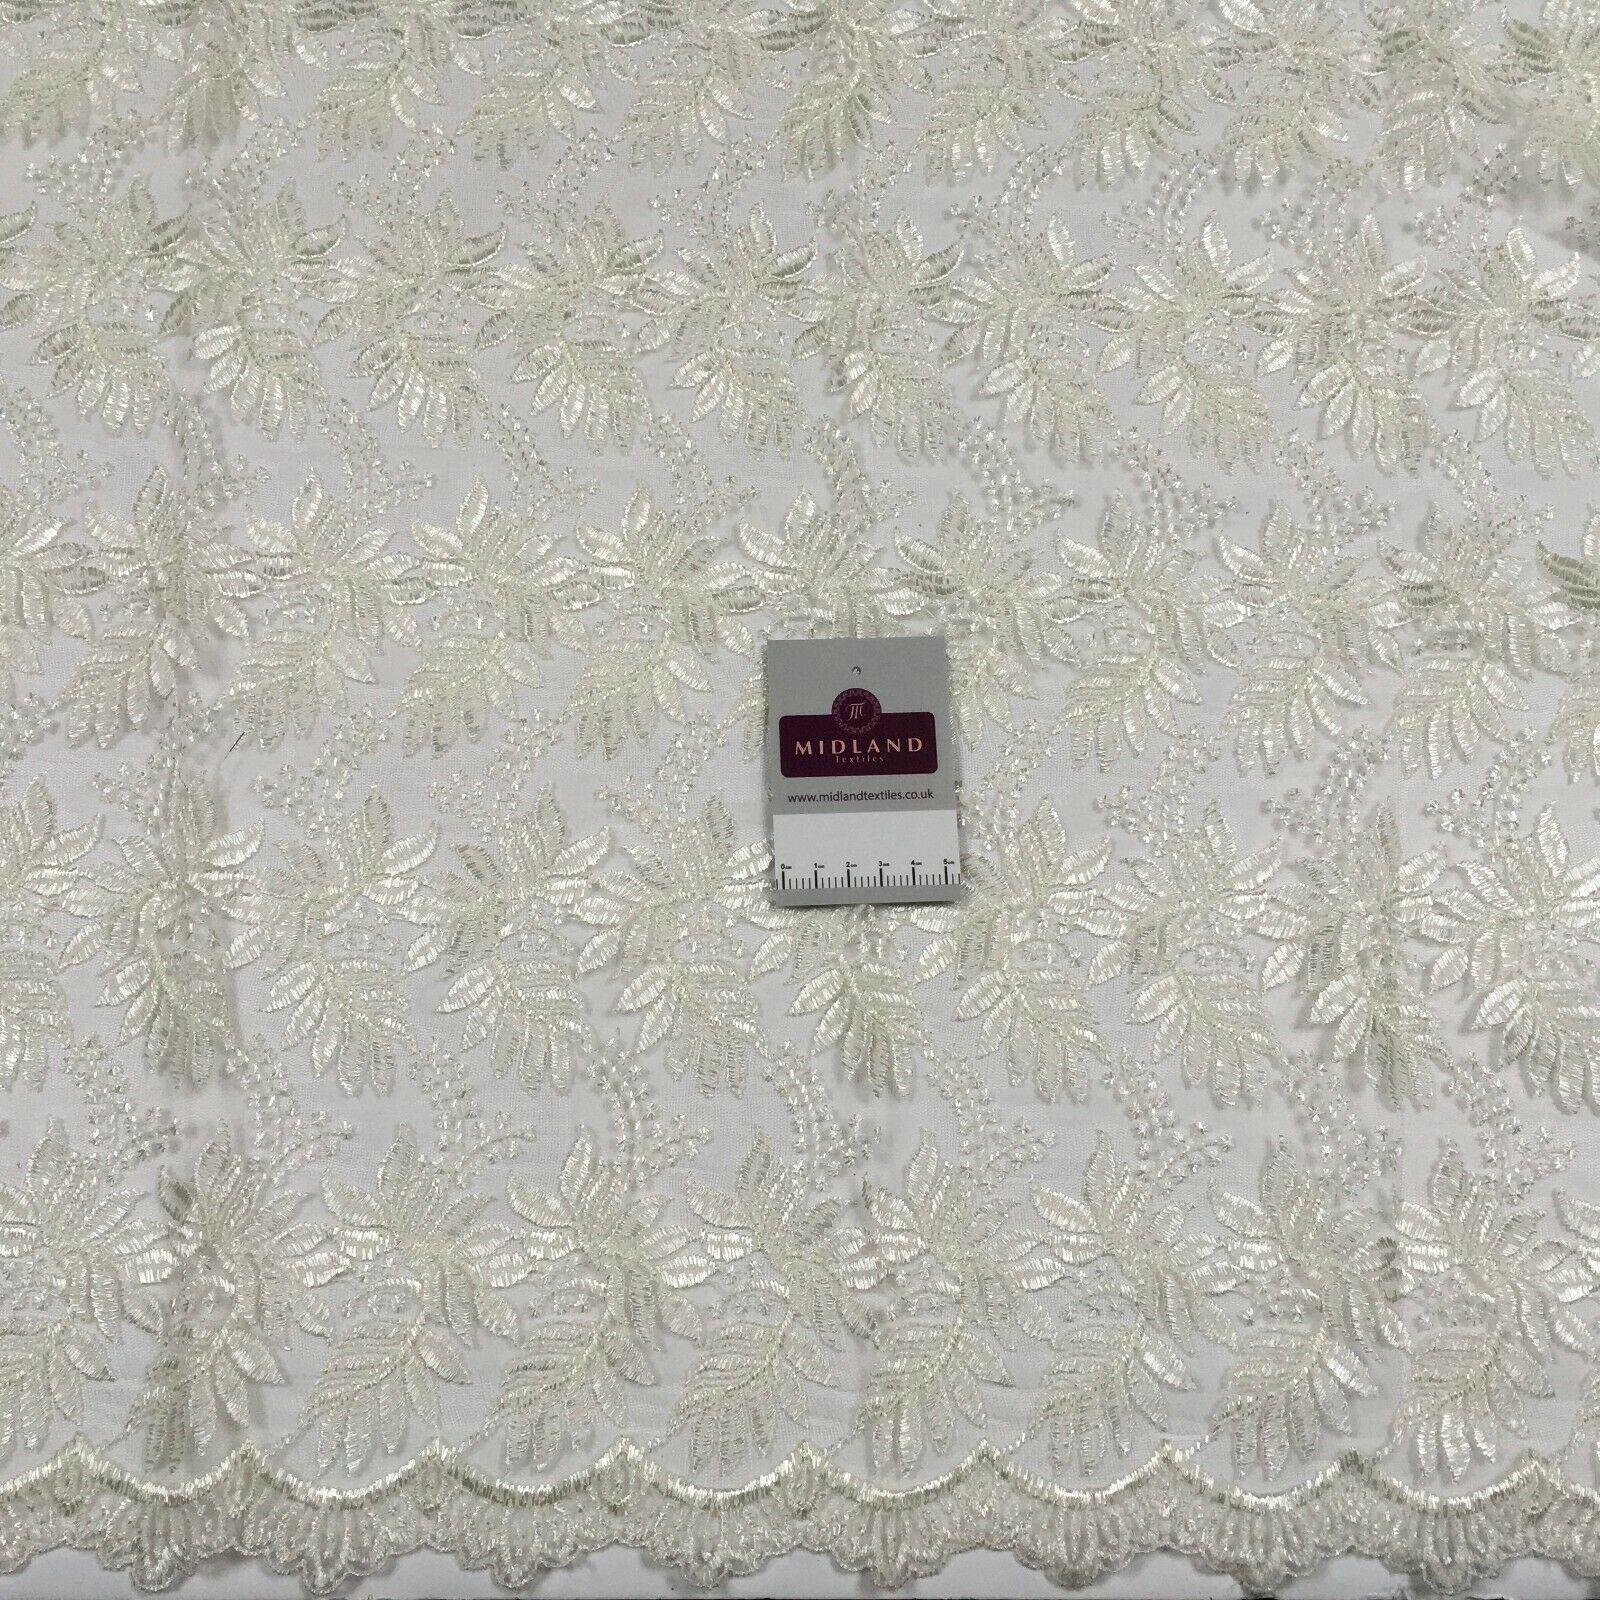 Tulle net lace Double edged Cream Approx 2 inch wide Per HALF metre